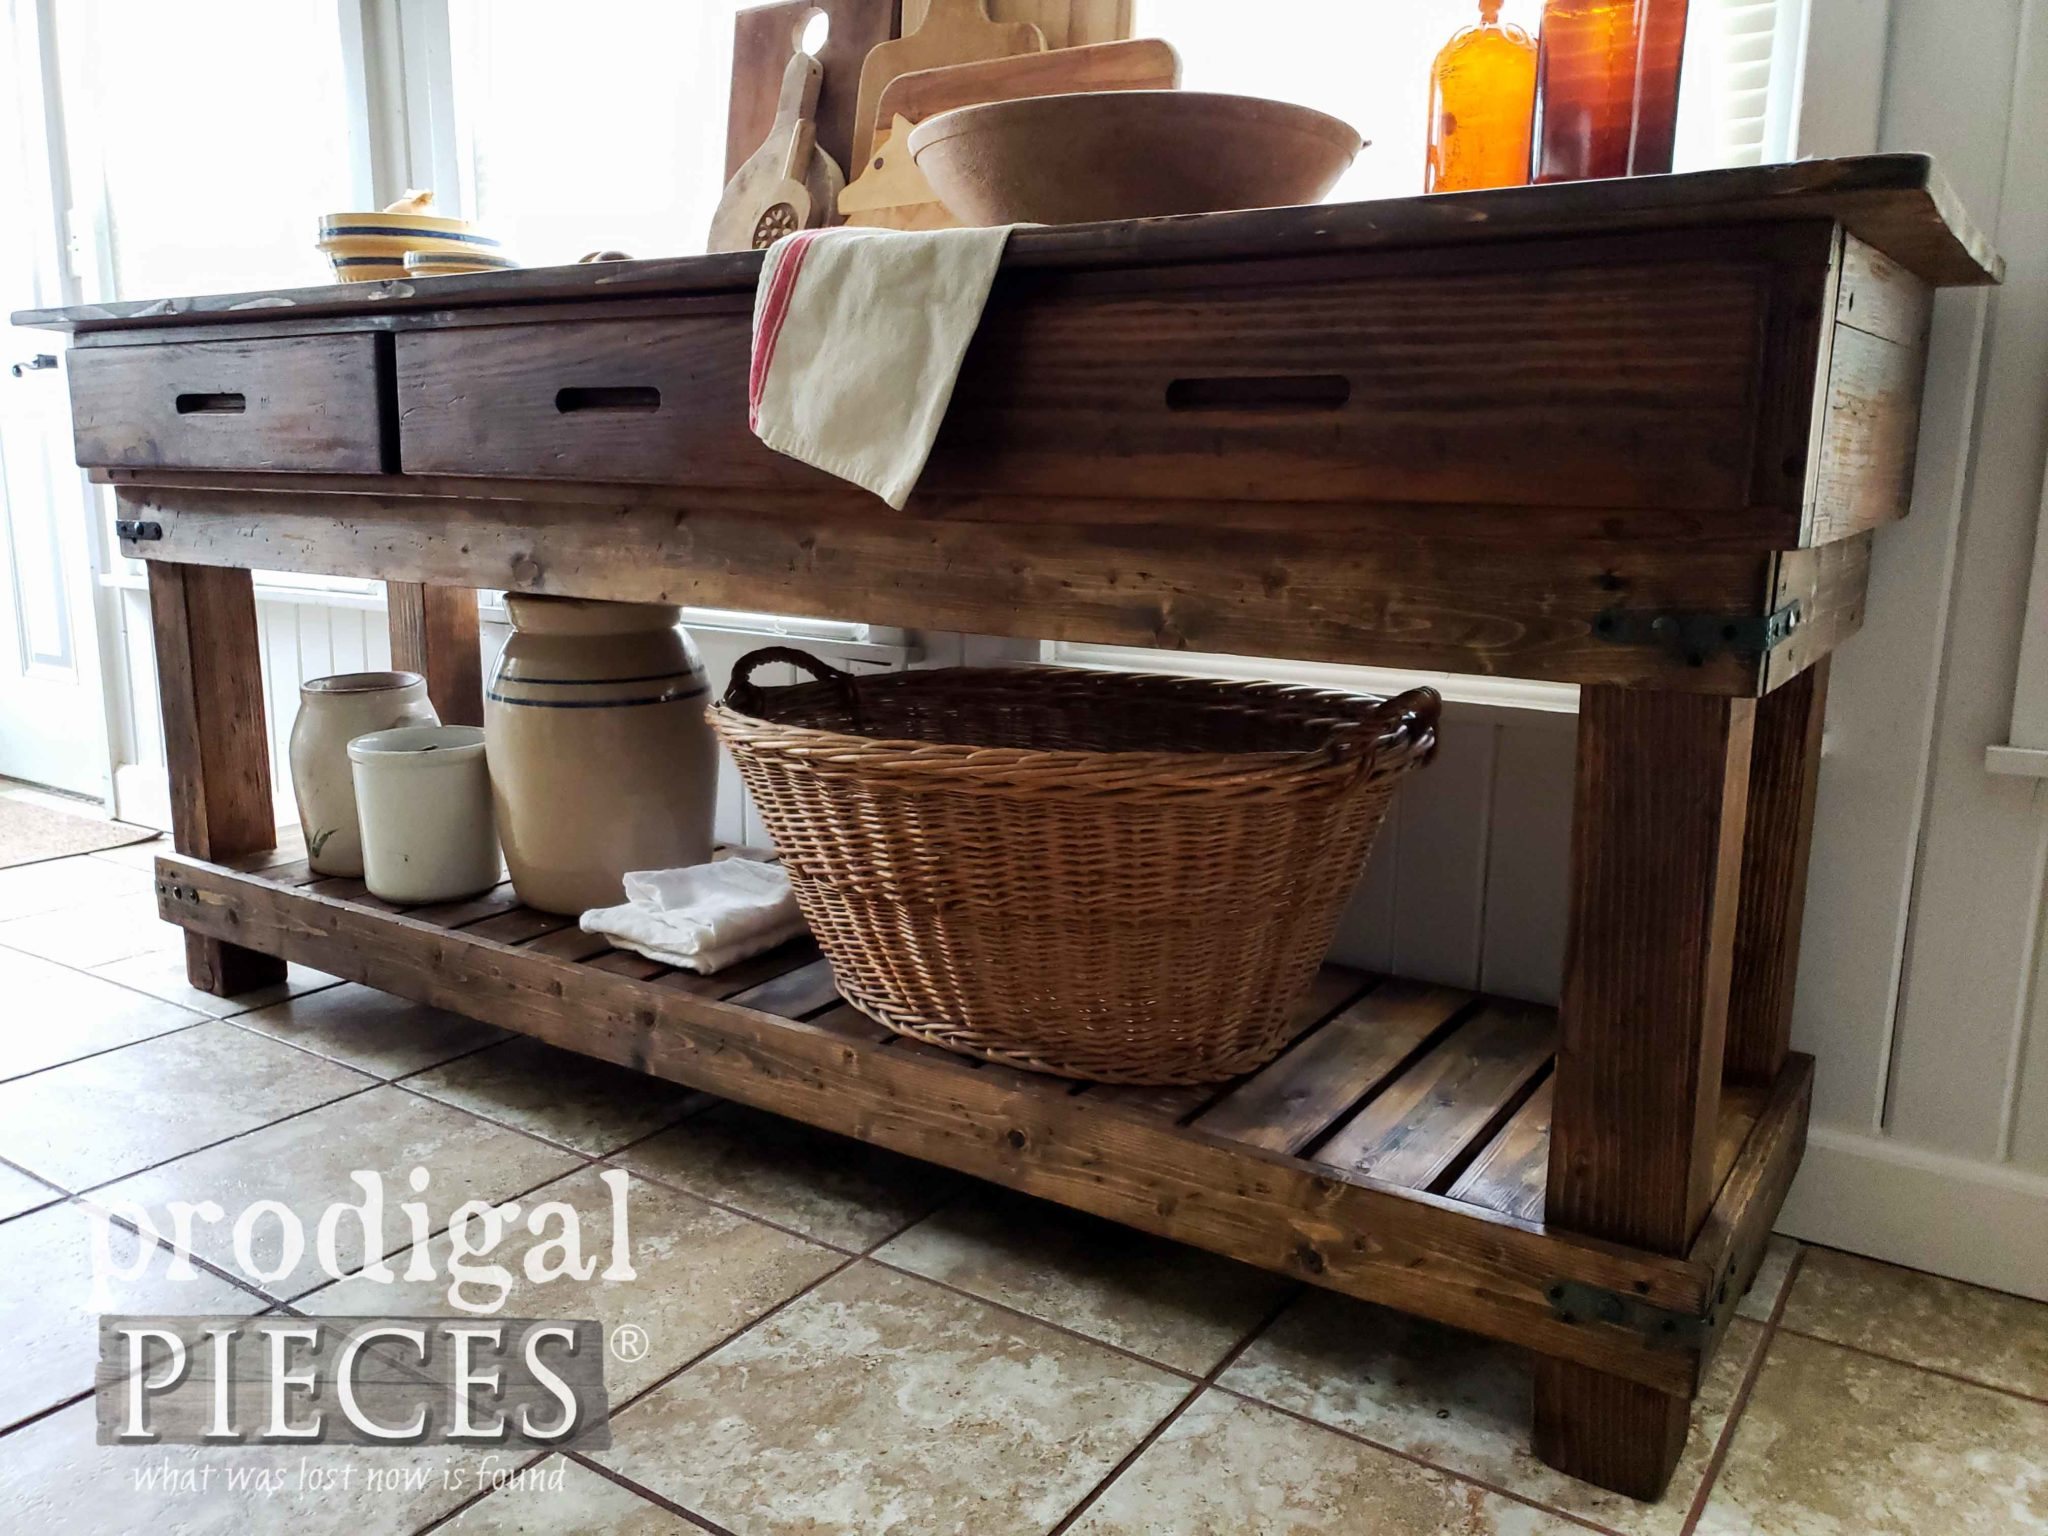 Handmade Farmhouse Workbench Created by Larissa of Prodigal Pieces | prodigalpieces.com